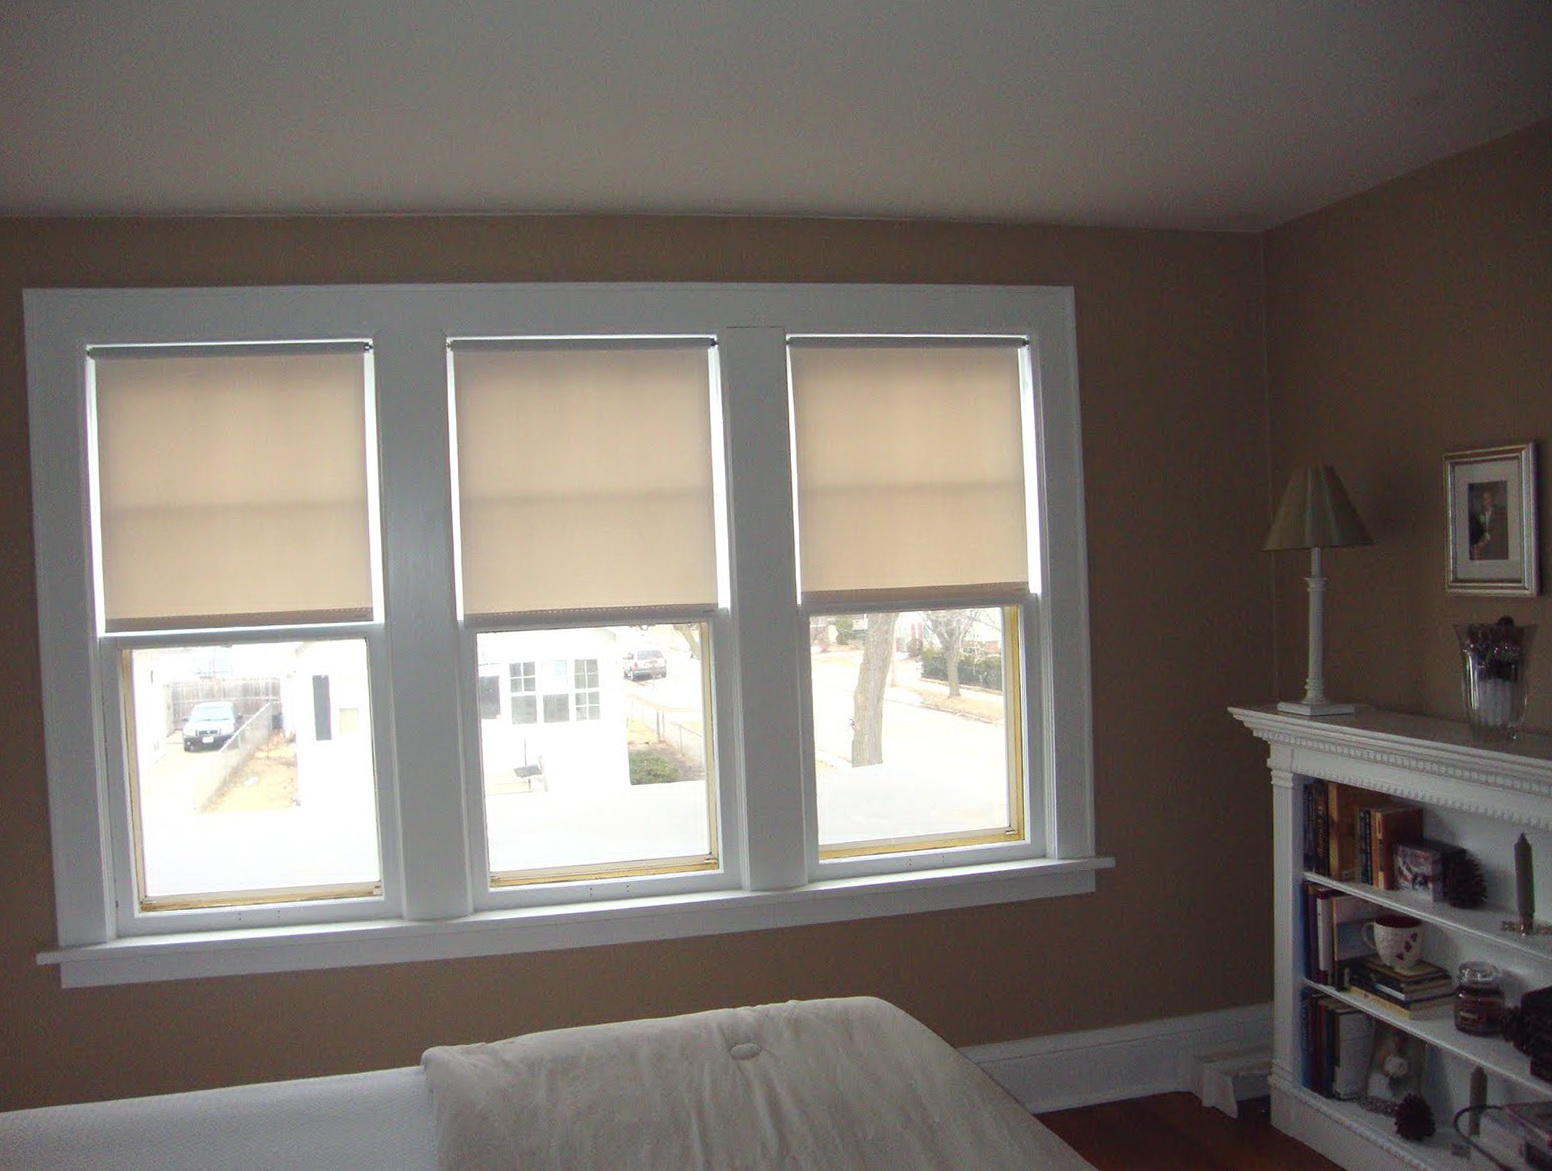 Blinds Or Curtains For Bedroom